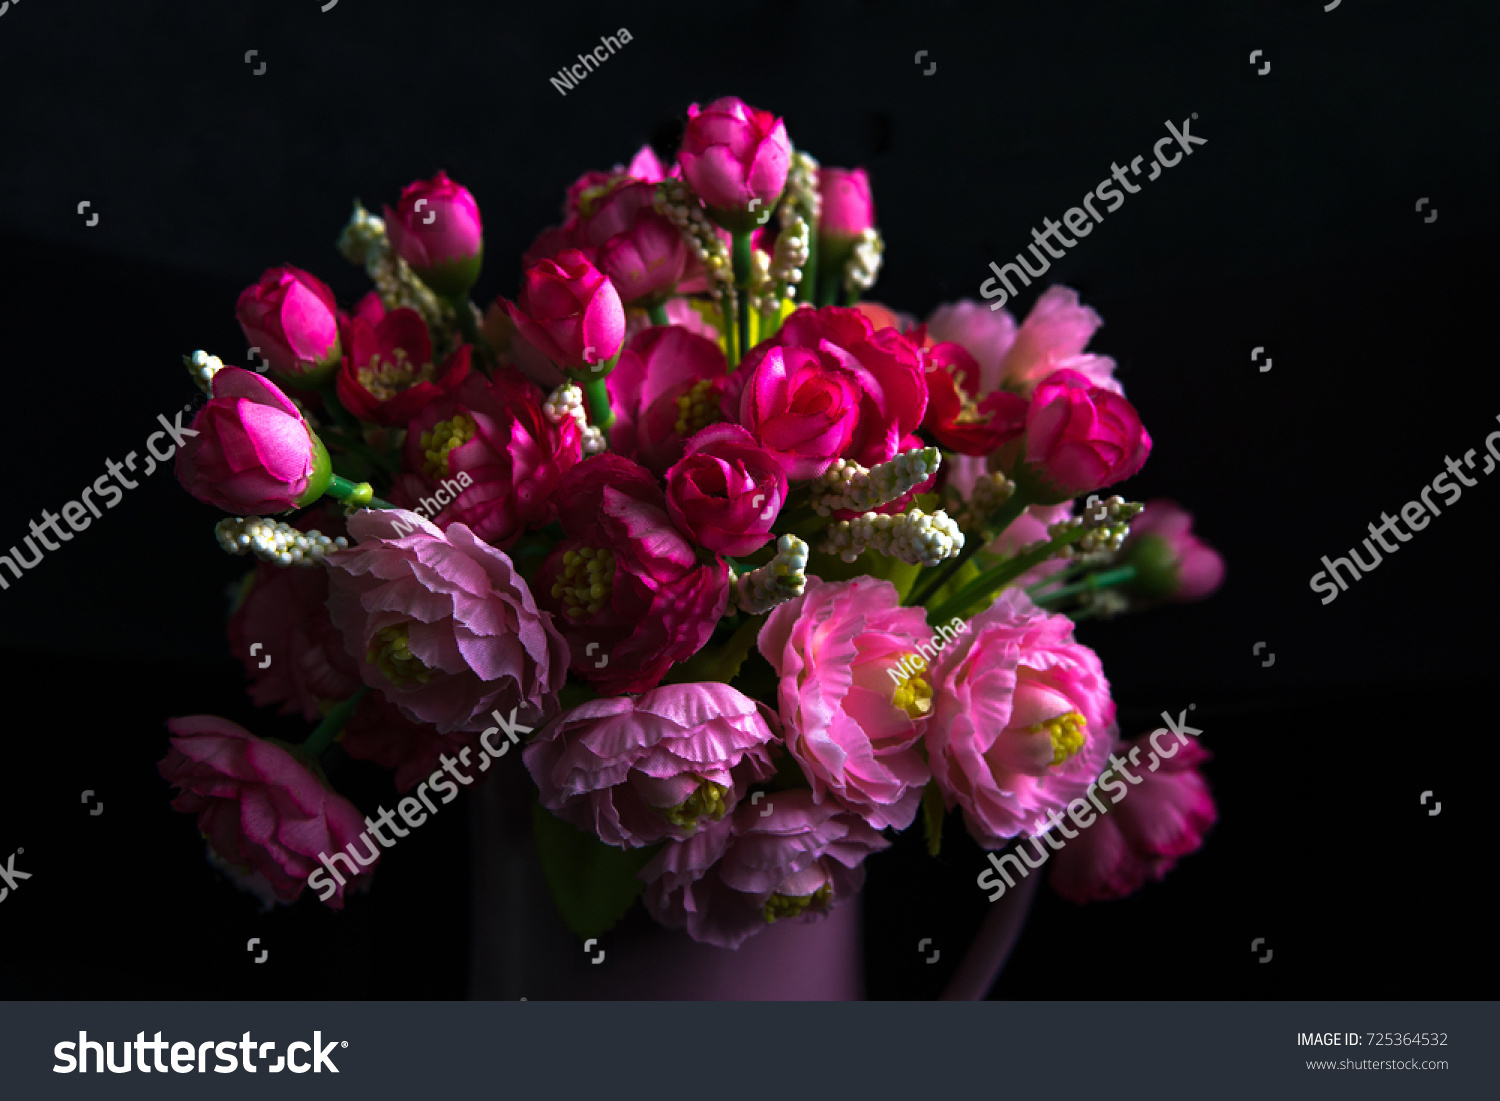 Beautiful bunch pink flowers vase on stock photo 725364532 beautiful bunch of pink flowers in the vase on black background reviewsmspy